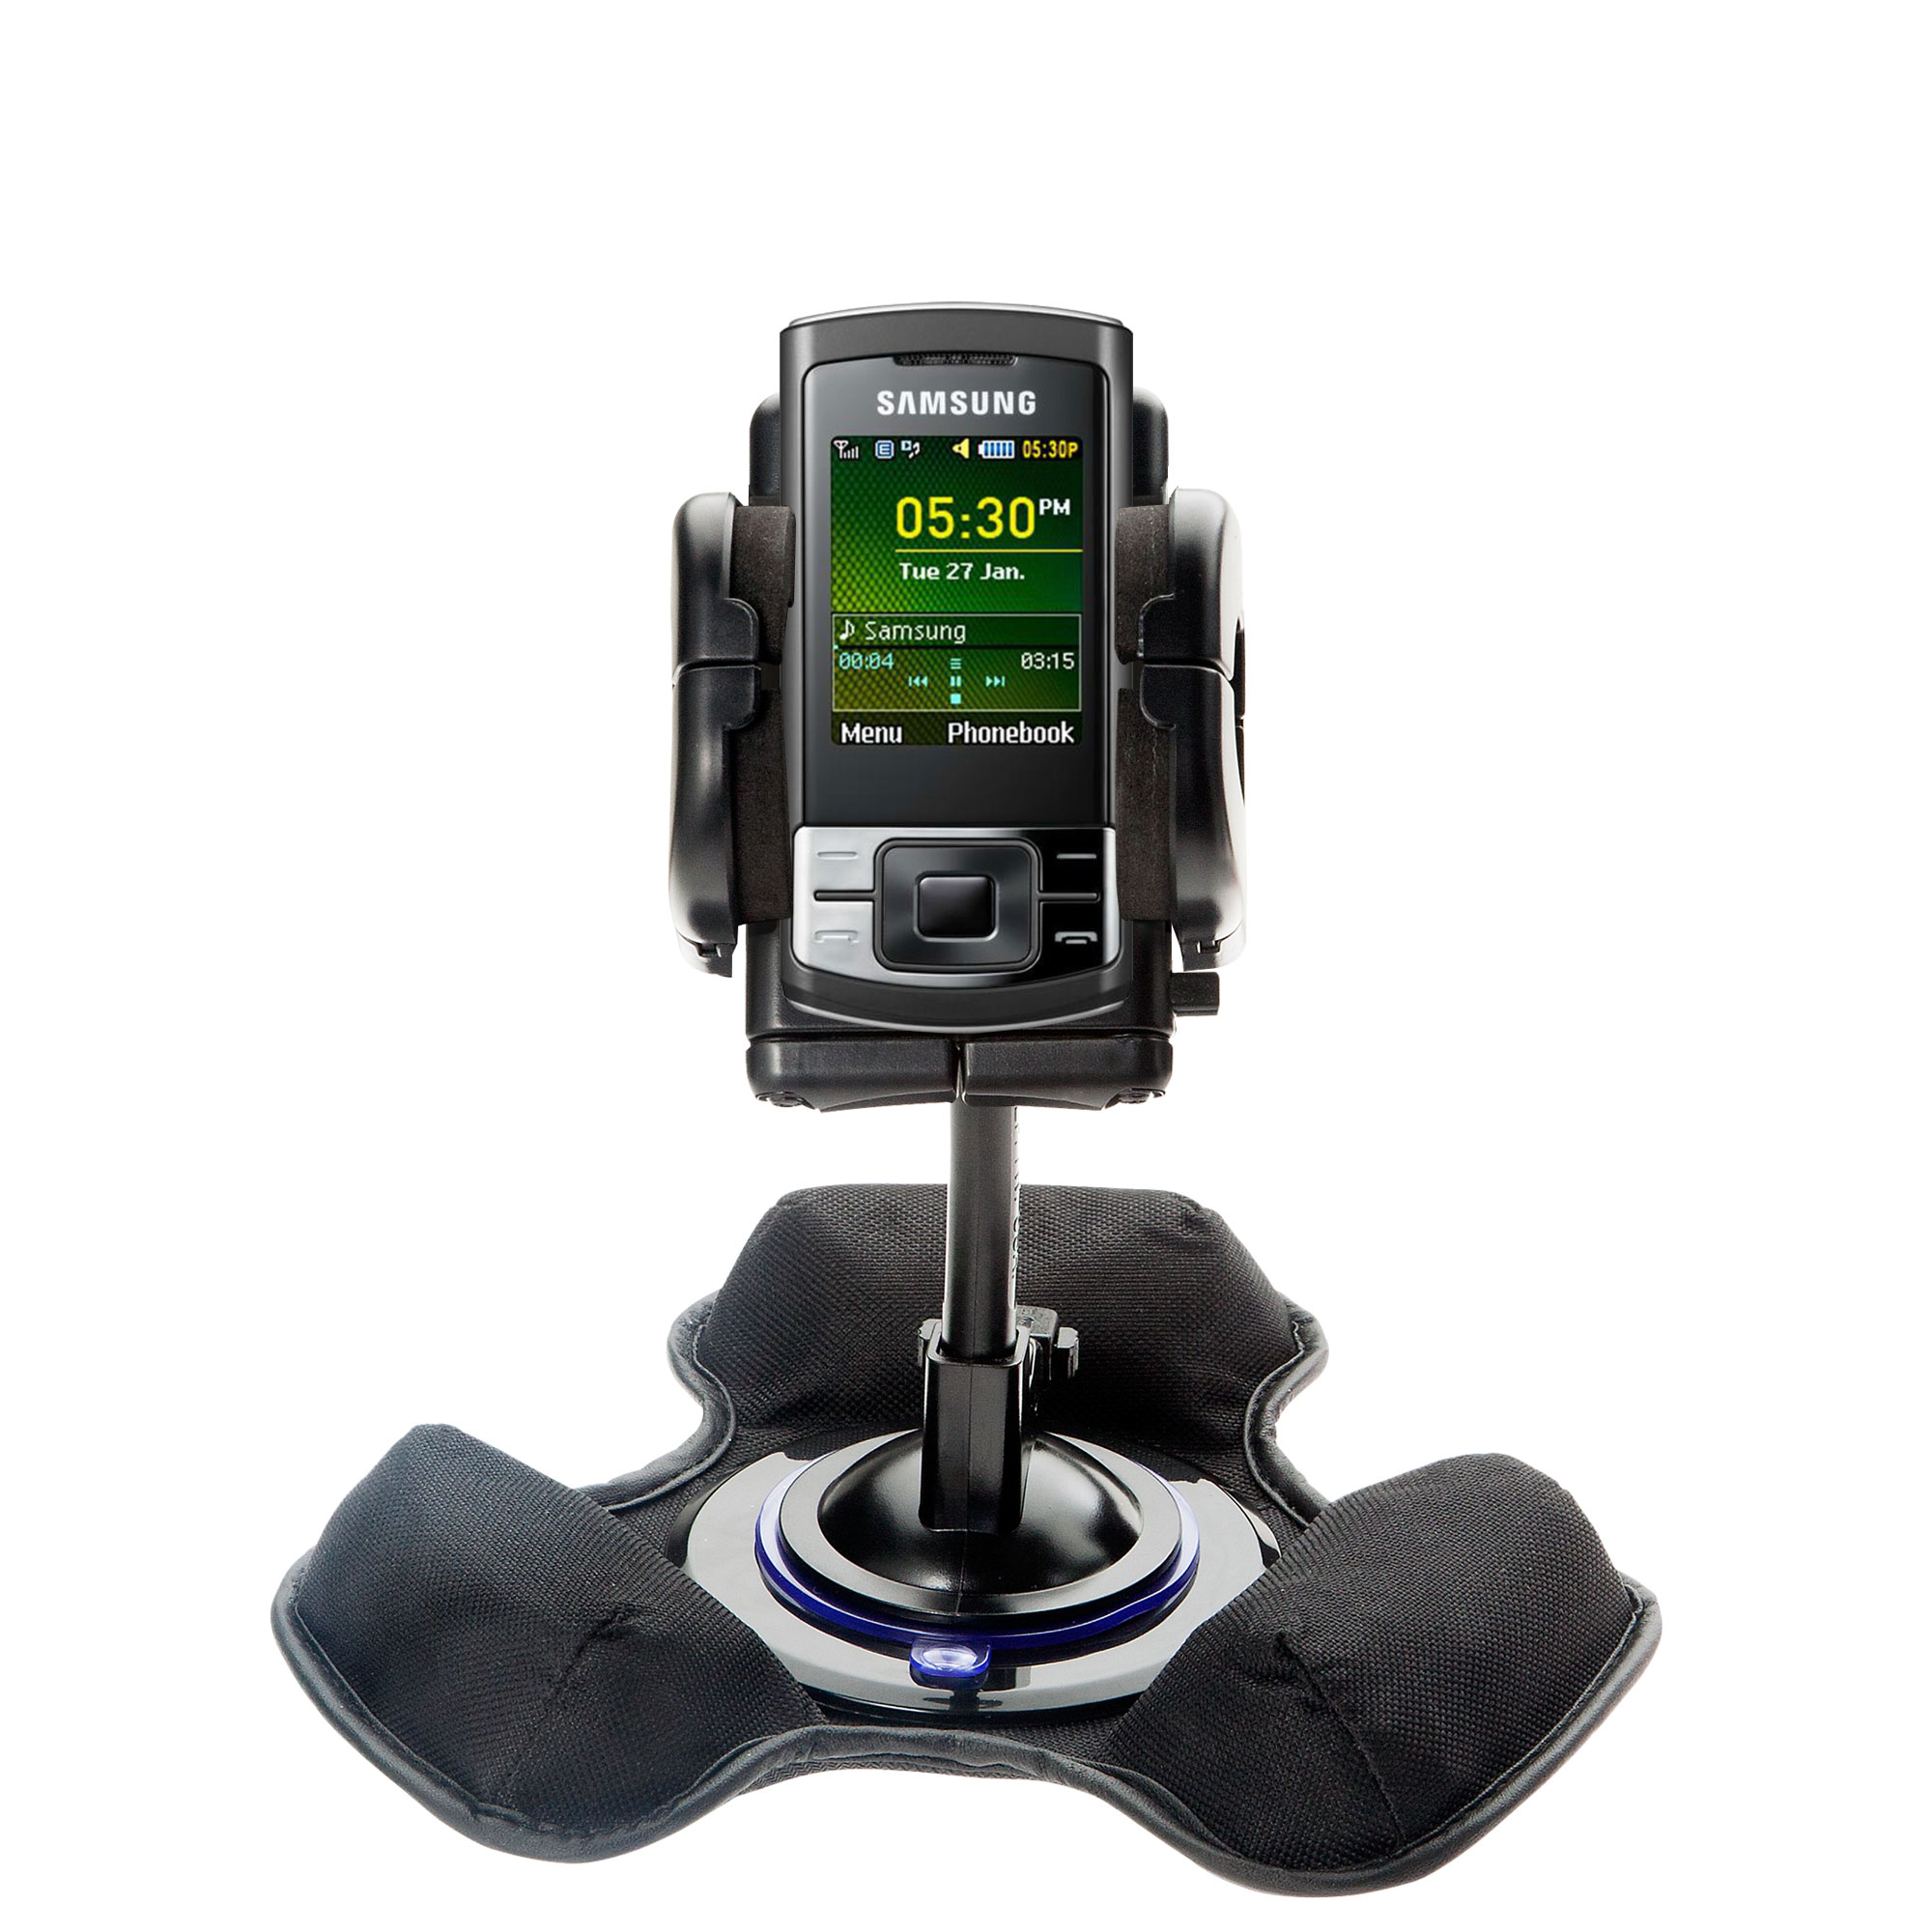 Dash and Windshield Holder compatible with the Samsung GT-C3050